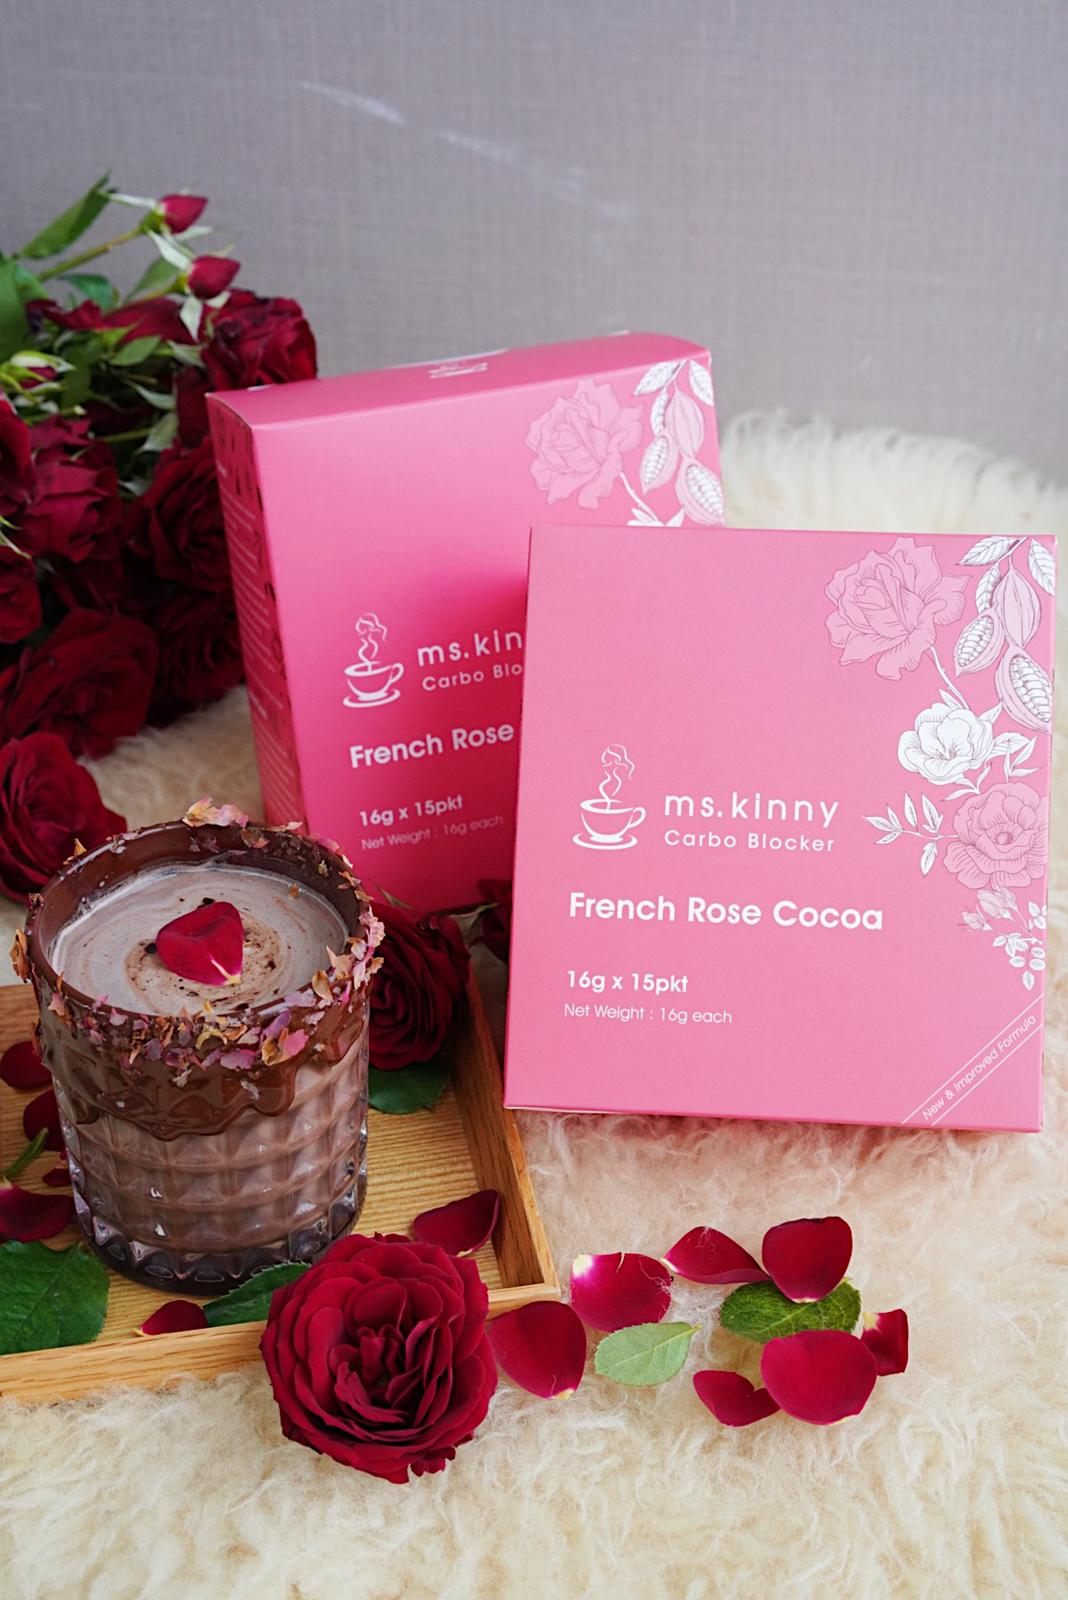 Mskinny French Rose Cocoa